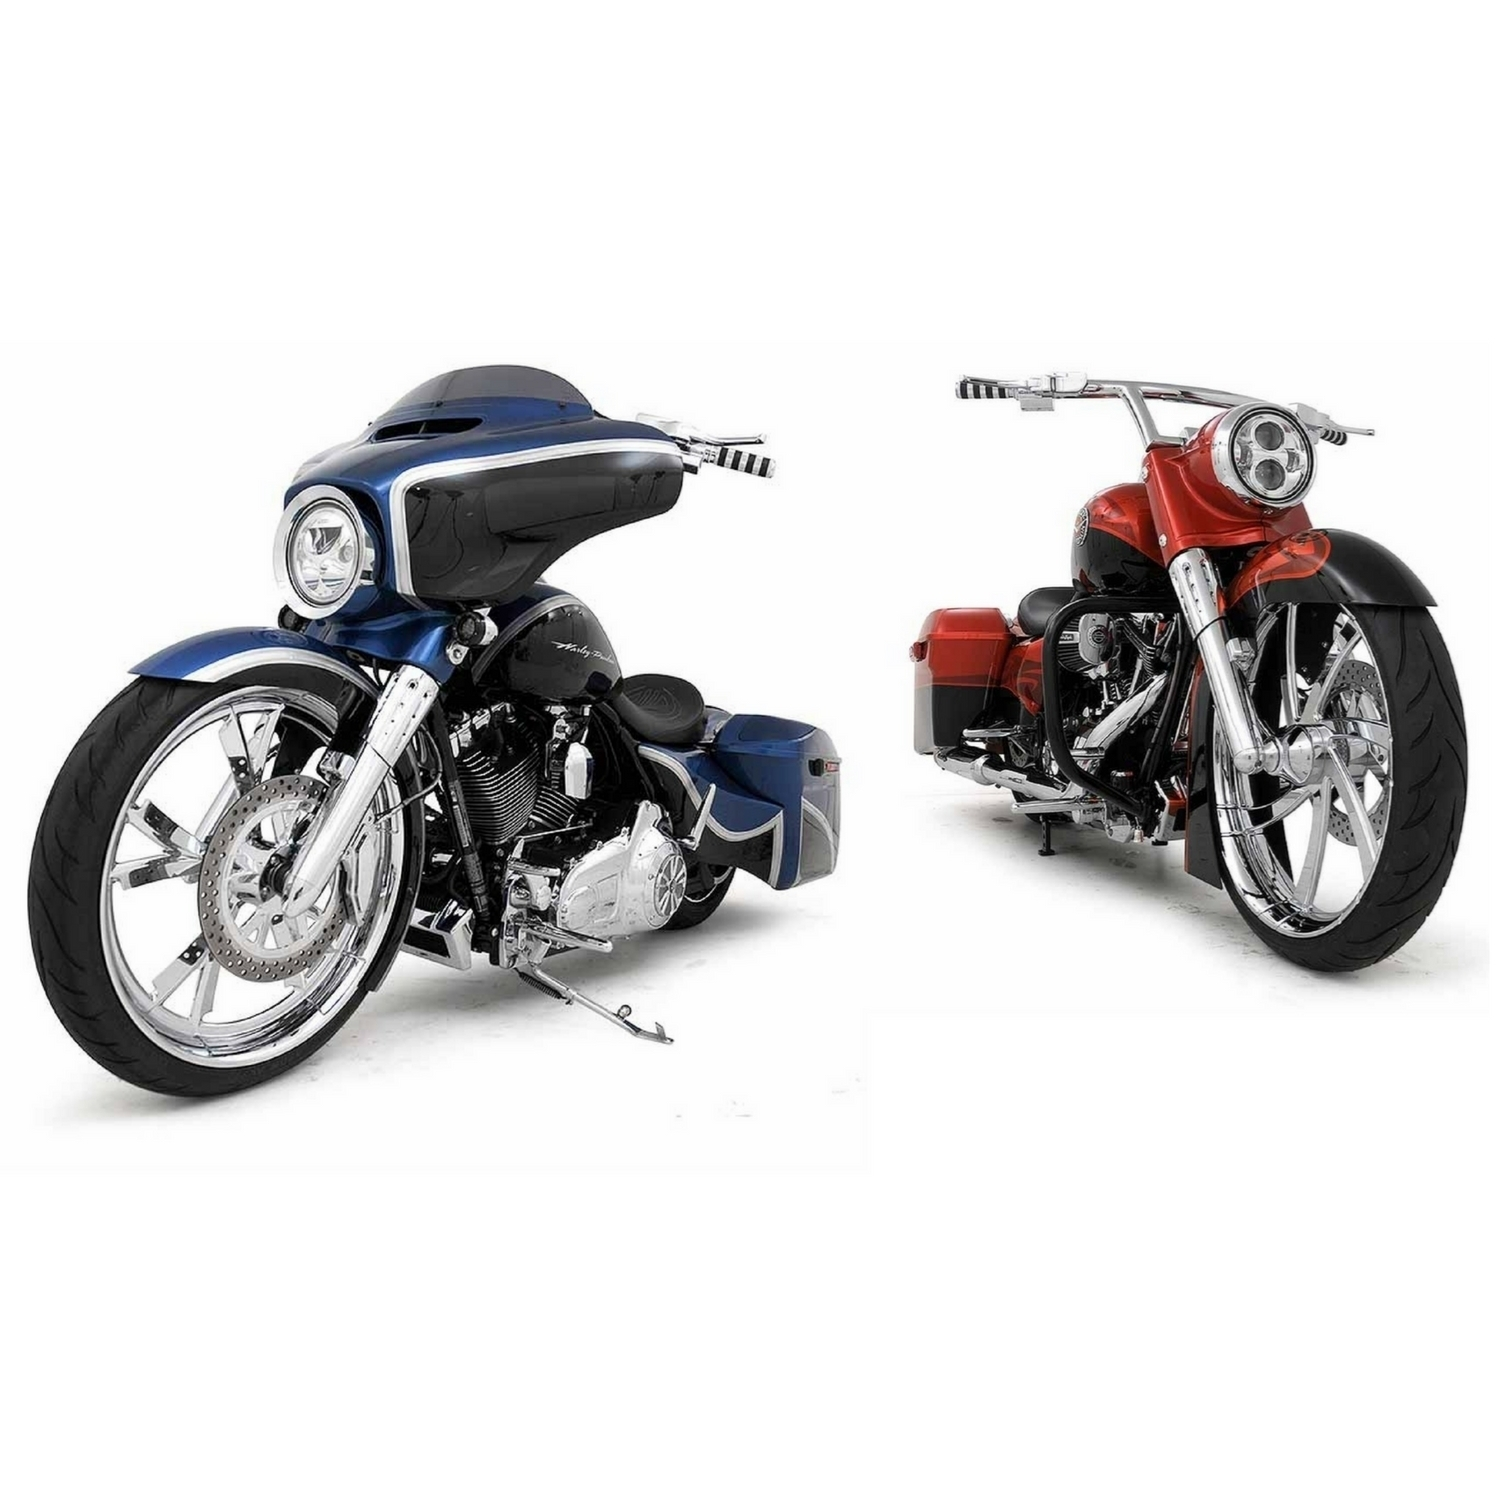 Picture of FL/Touring - Street Glide & Road King 2009 - 2013  23'' front wheel